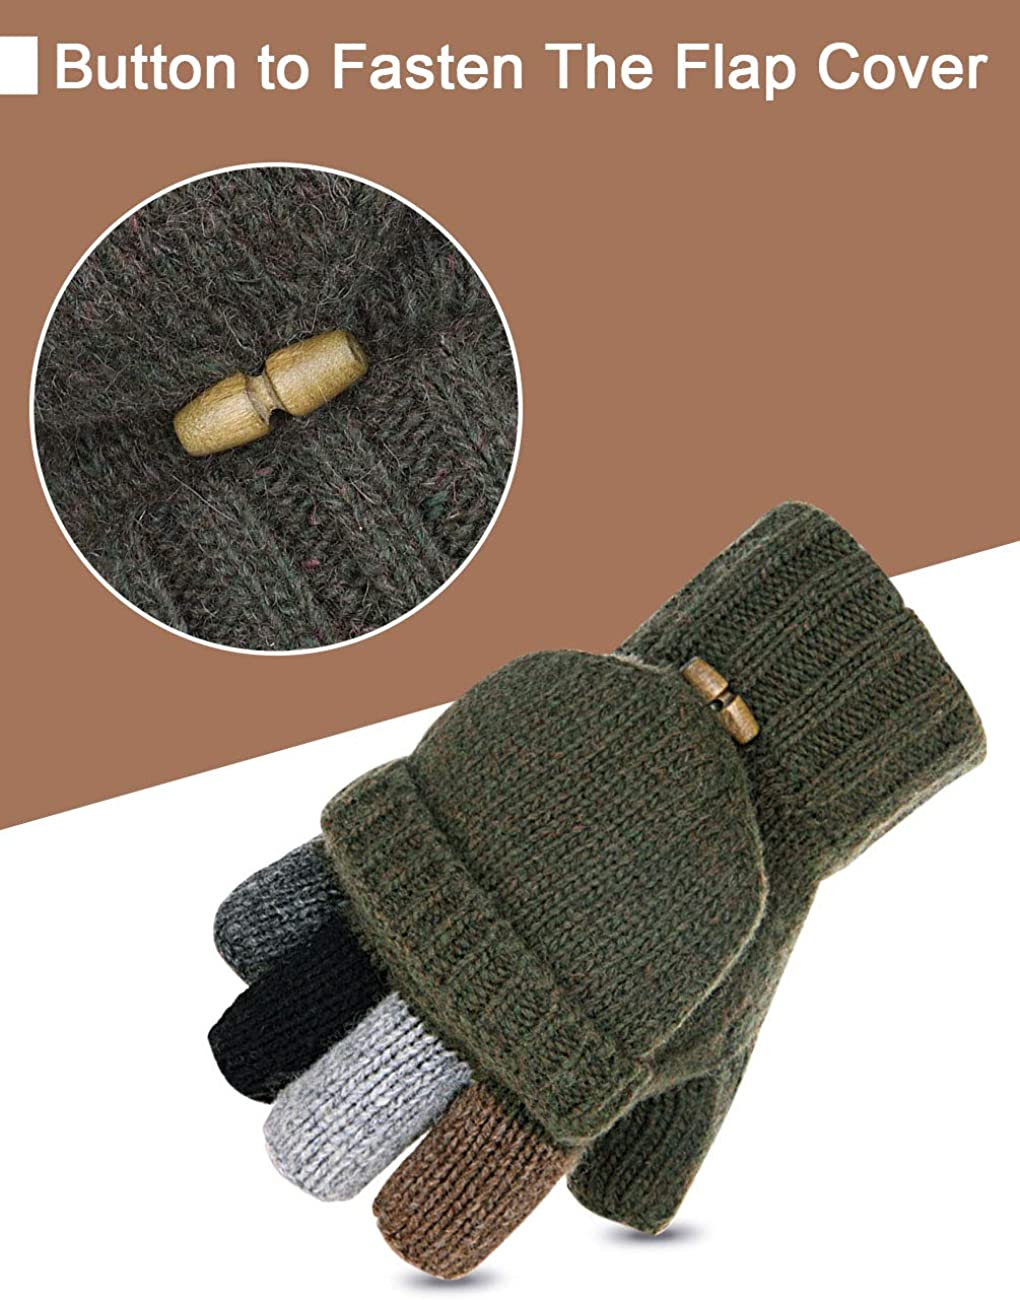 Petrunup Winter Wool Blended Knit Fingerless Gloves Half Finger Mittens with Fleece Lining for Mens /& Womens Driving